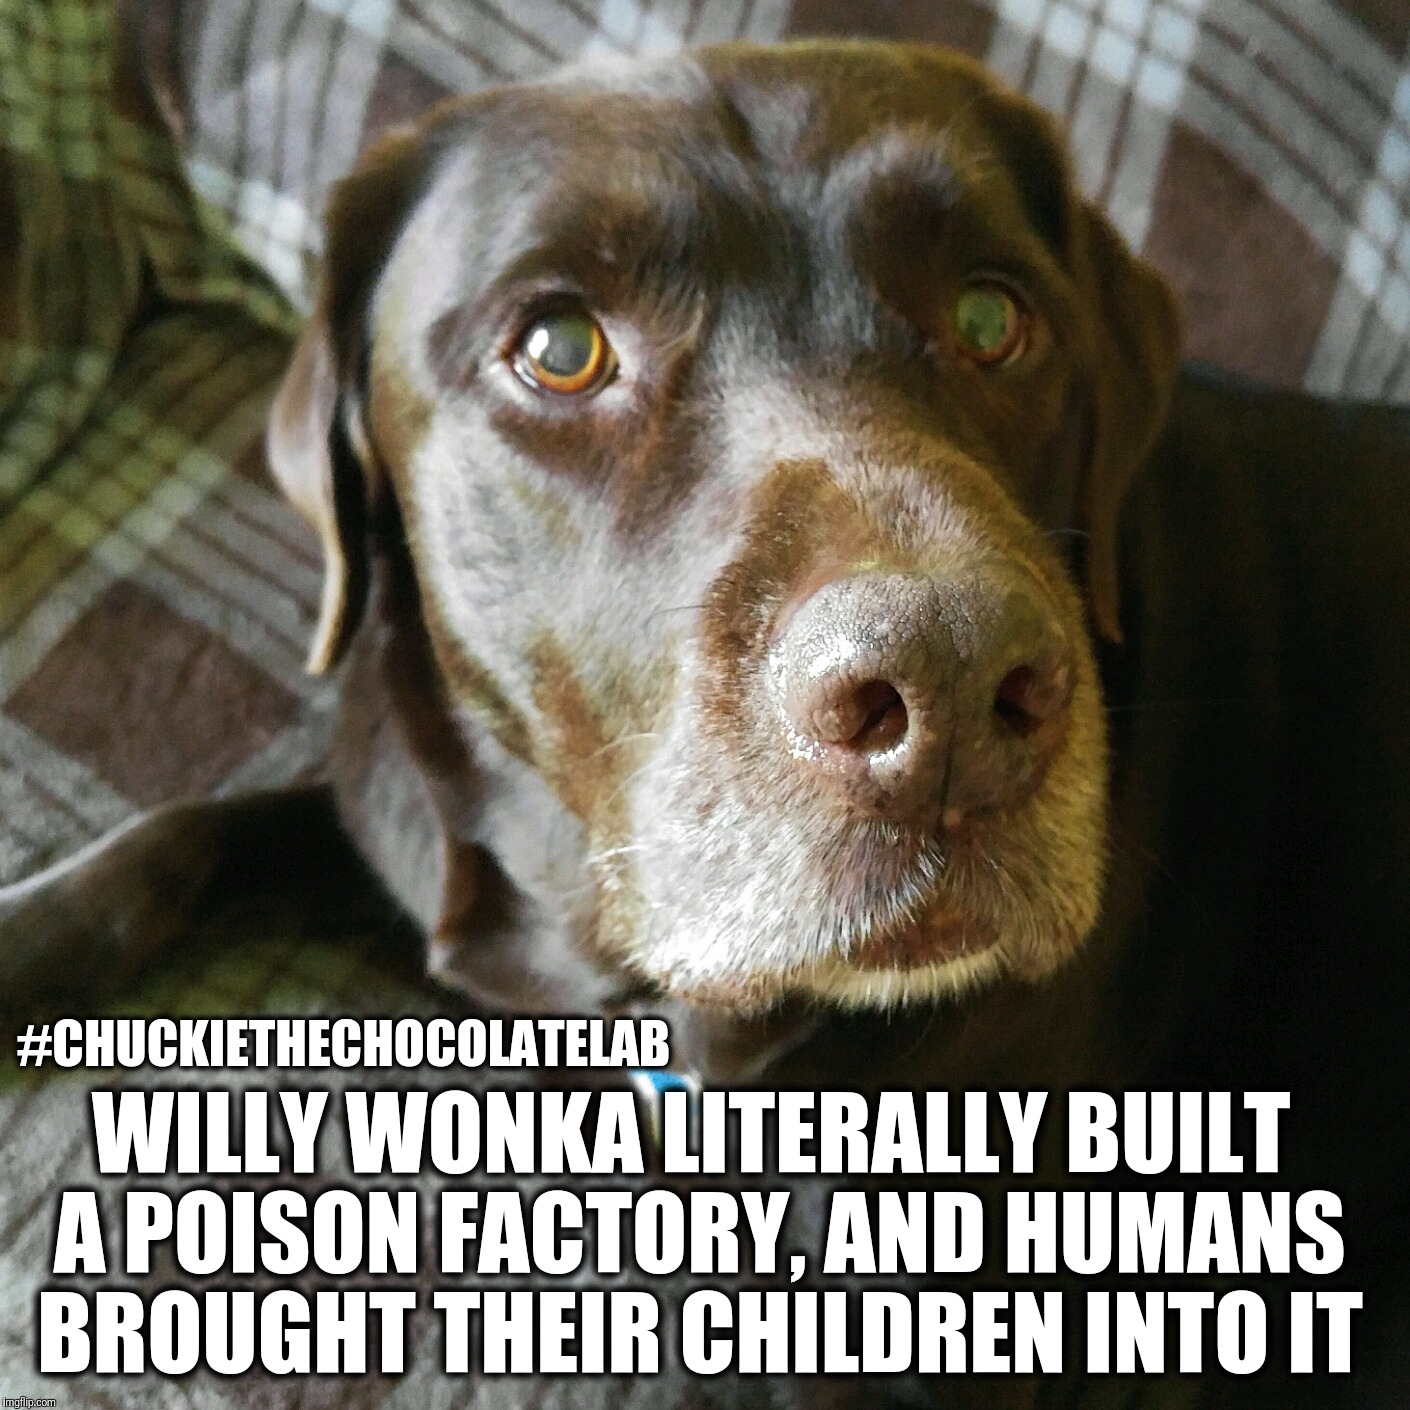 Willy Wonka poison factory  | #CHUCKIETHECHOCOLATELAB WILLY WONKA LITERALLY BUILT A POISON FACTORY, AND HUMANS BROUGHT THEIR CHILDREN INTO IT | image tagged in chuckie the chocolate lab,funny,memes,dogs,willy wonka,funny animals | made w/ Imgflip meme maker